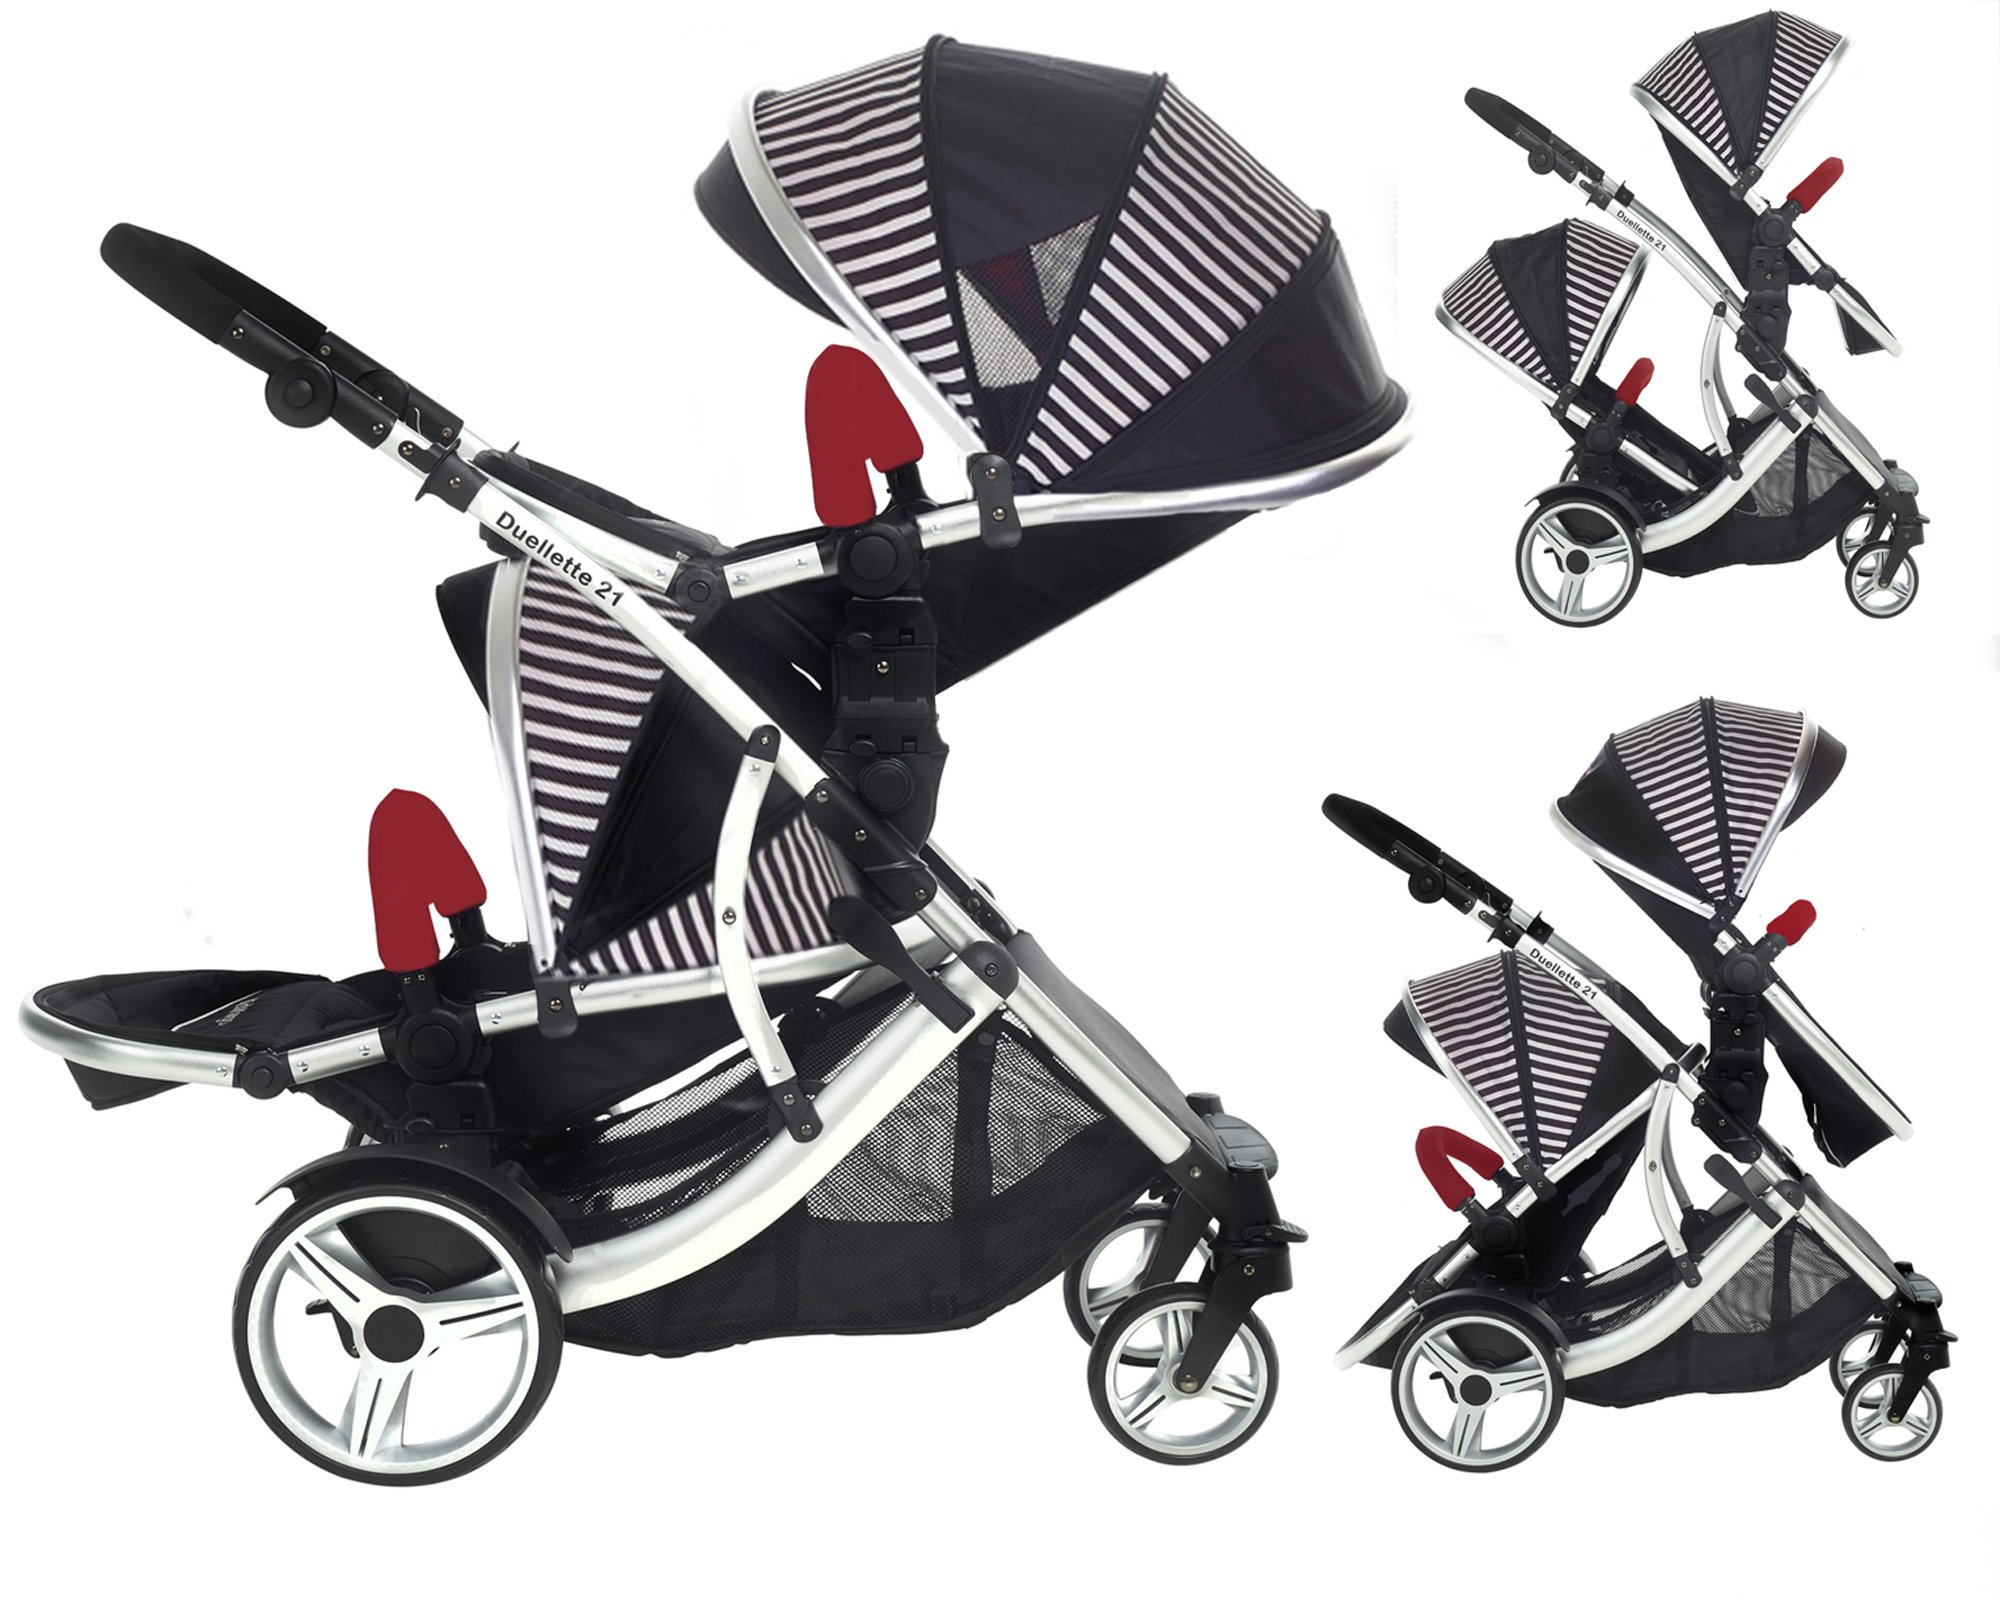 Duellette 21 BS Twin Double Pushchair Stroller Buggy Brand New Colour Range! (Oxford stripe plain bumpers) Kids Kargo Demo video please see link http://youtu.be/Ngj0yD3TMSM Various seat positions. Both seats can face mum (ideal for twins) Suitability Newborn Twins (if used with car seats) or Newborn/toddler. Accommodates 1 or 2 car seats 1